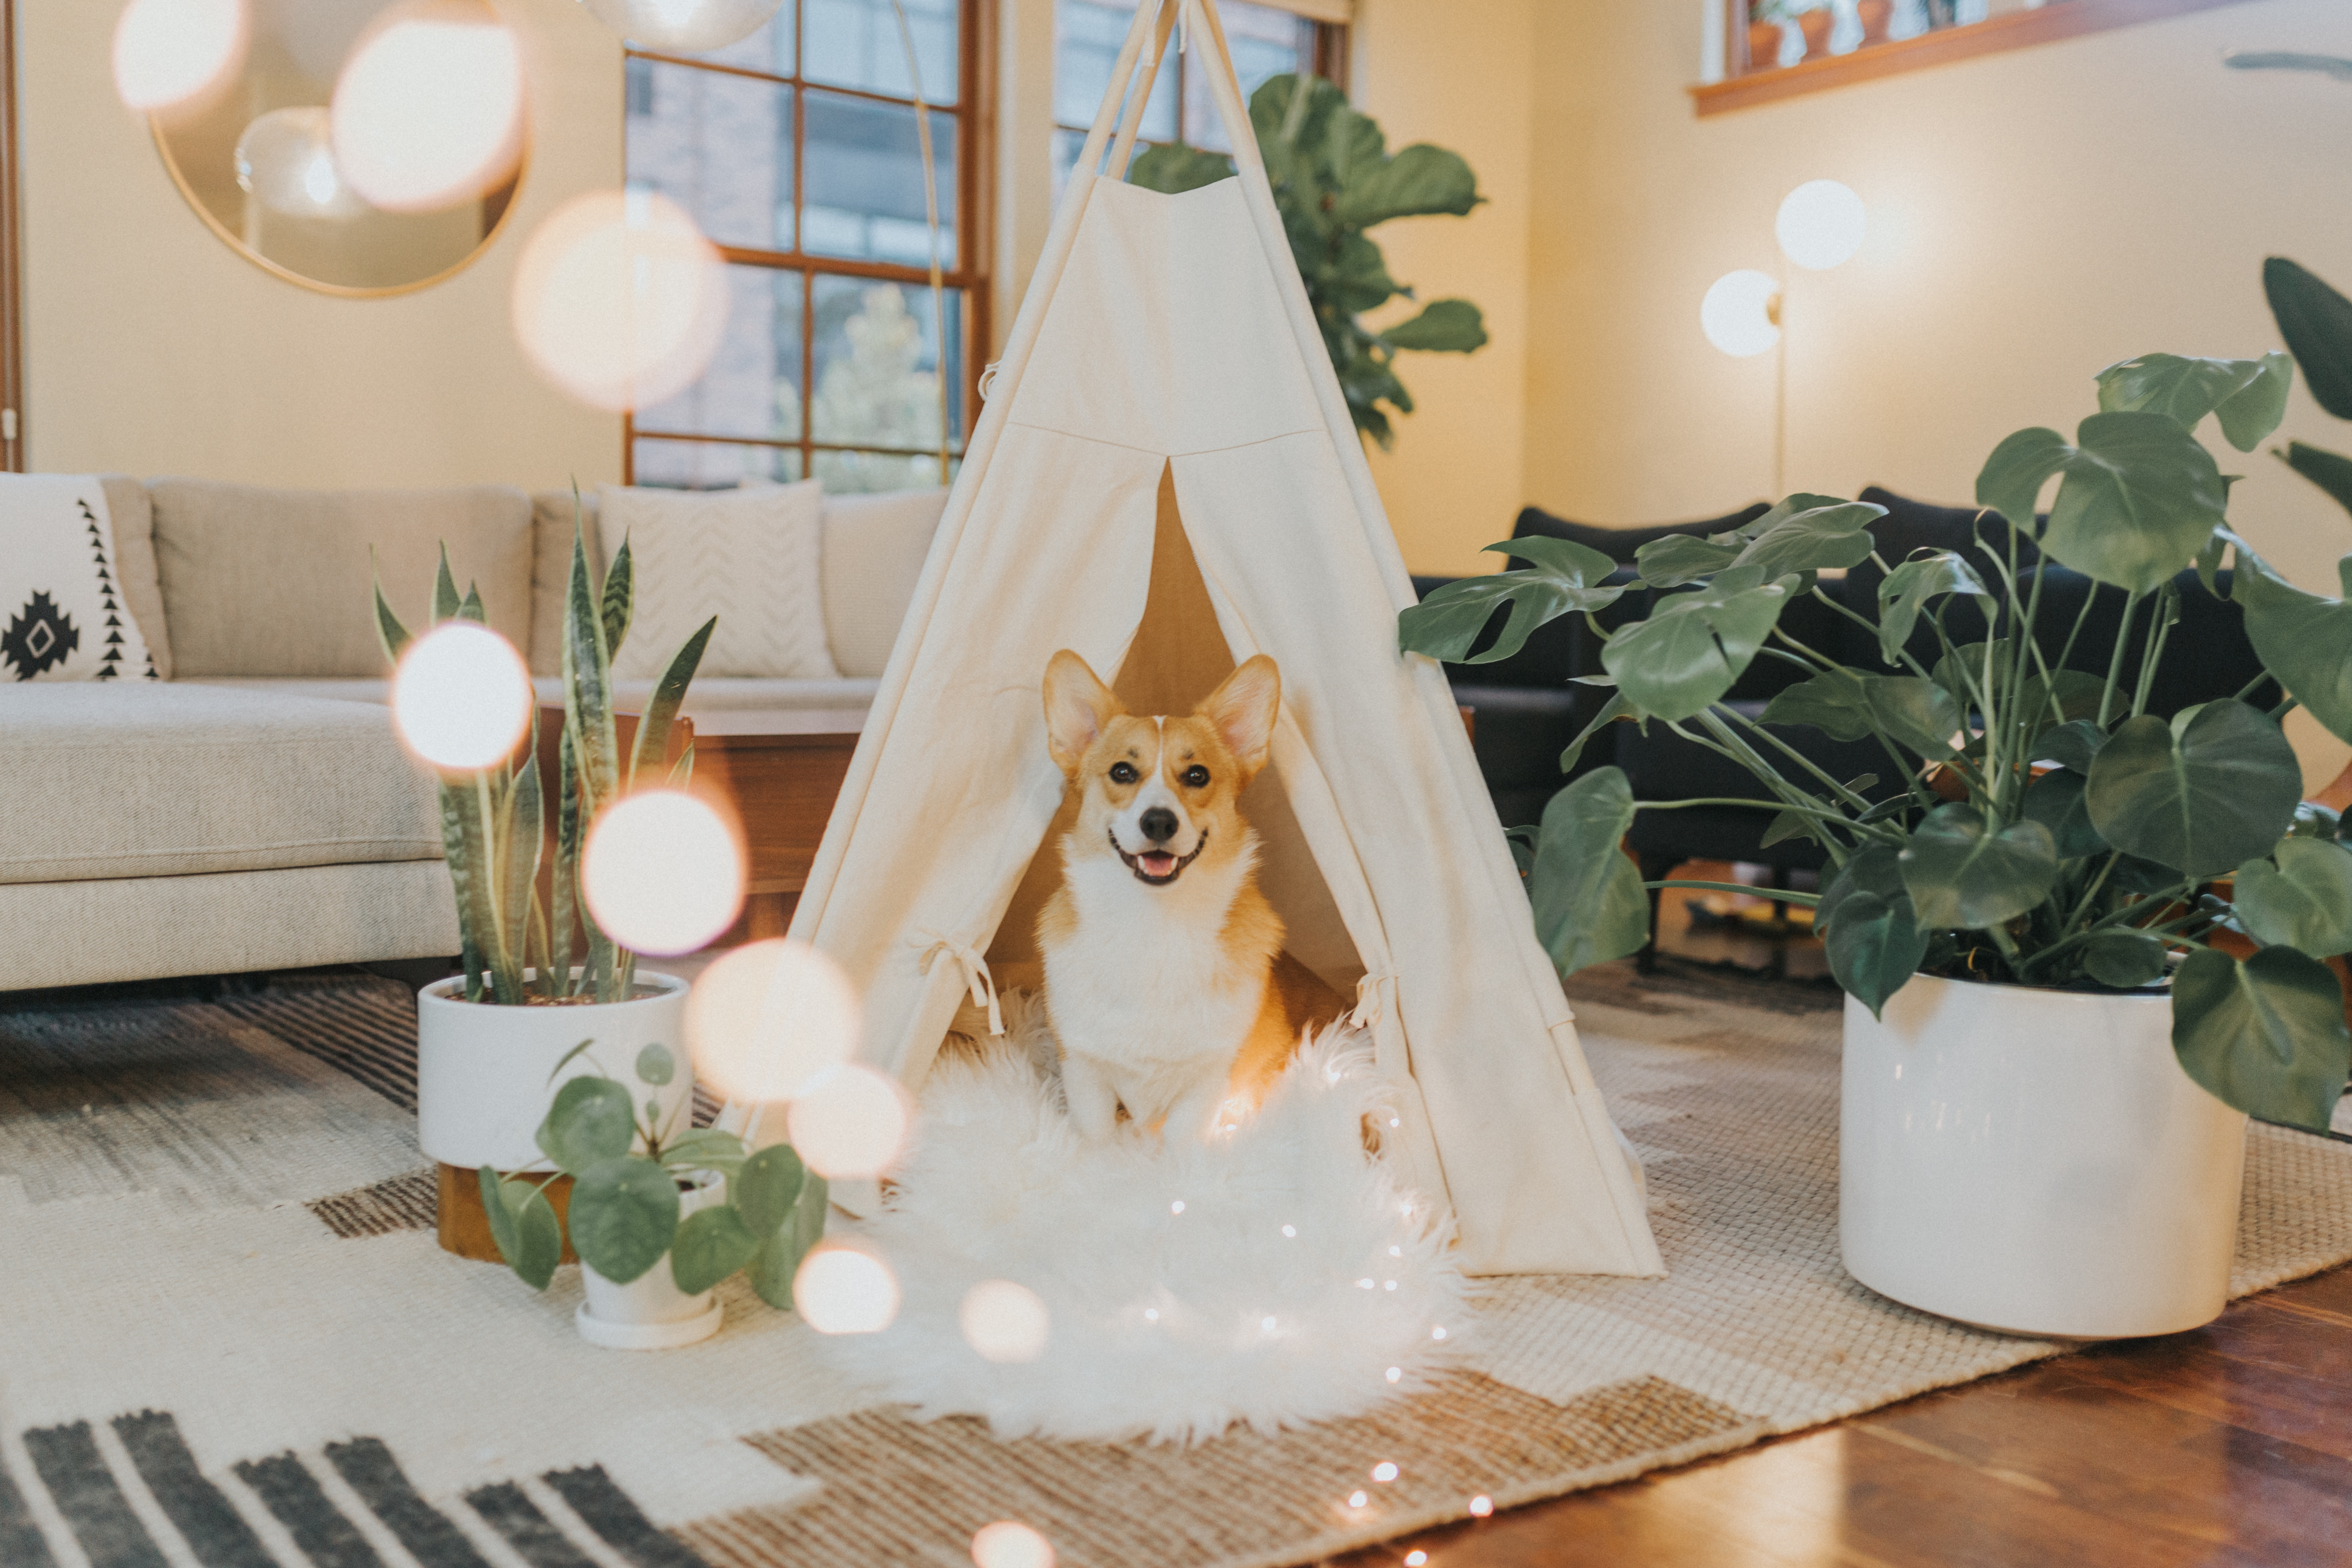 corgi in tent behind house plants